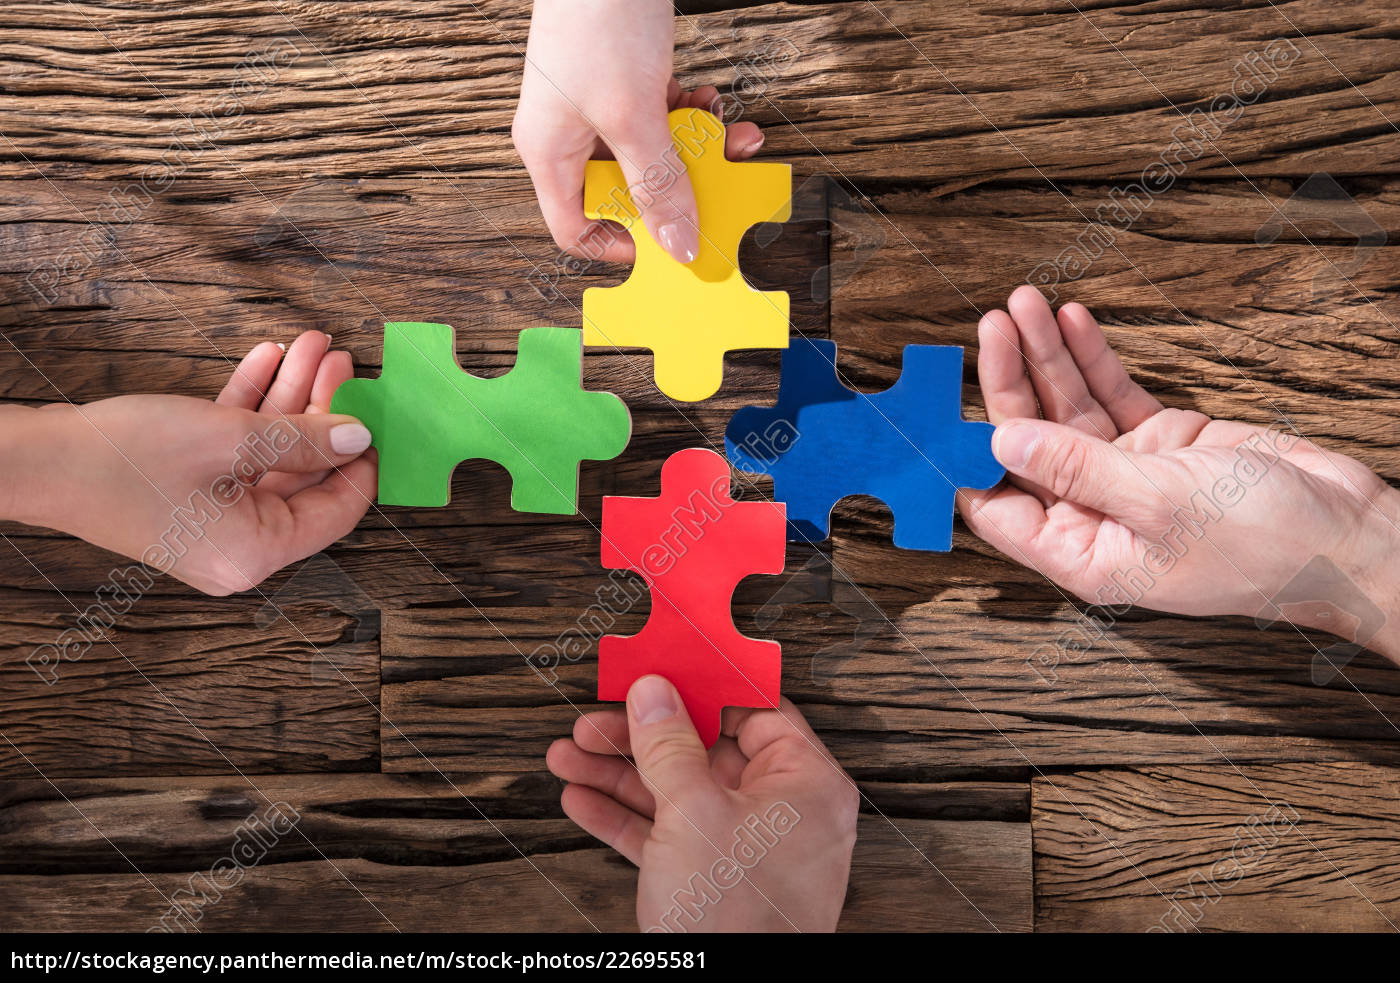 hands, holding, jigsaw, puzzle - 22695581